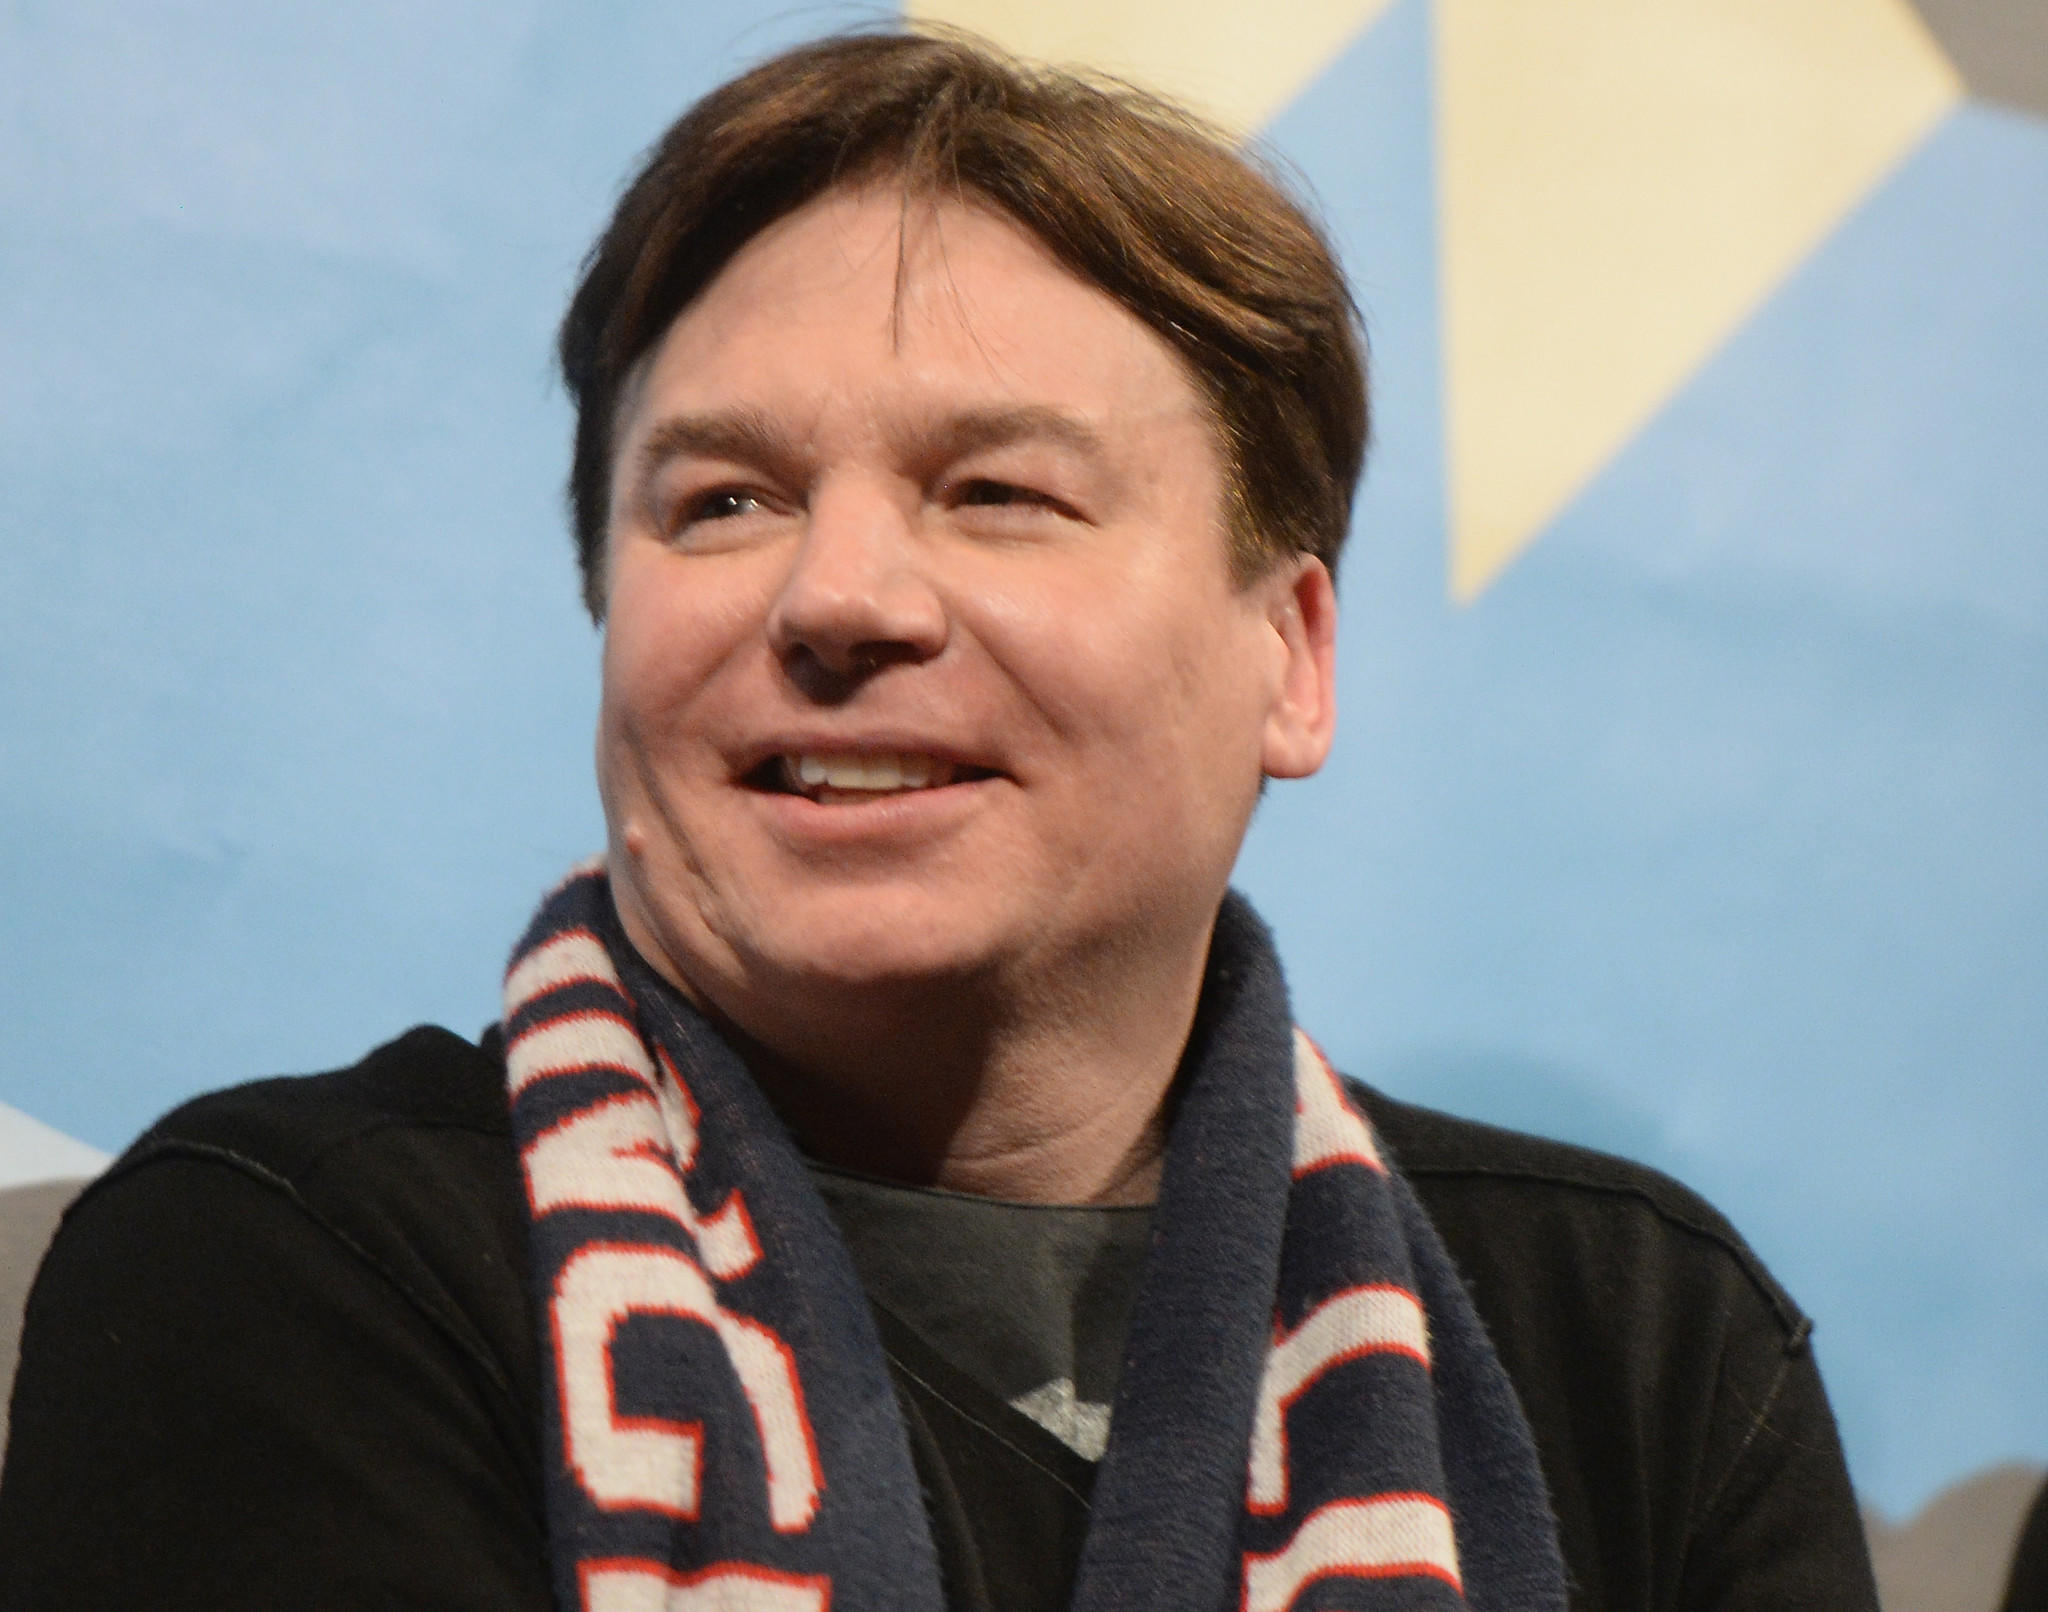 Mike Myers welcomes his second child, a baby girl.